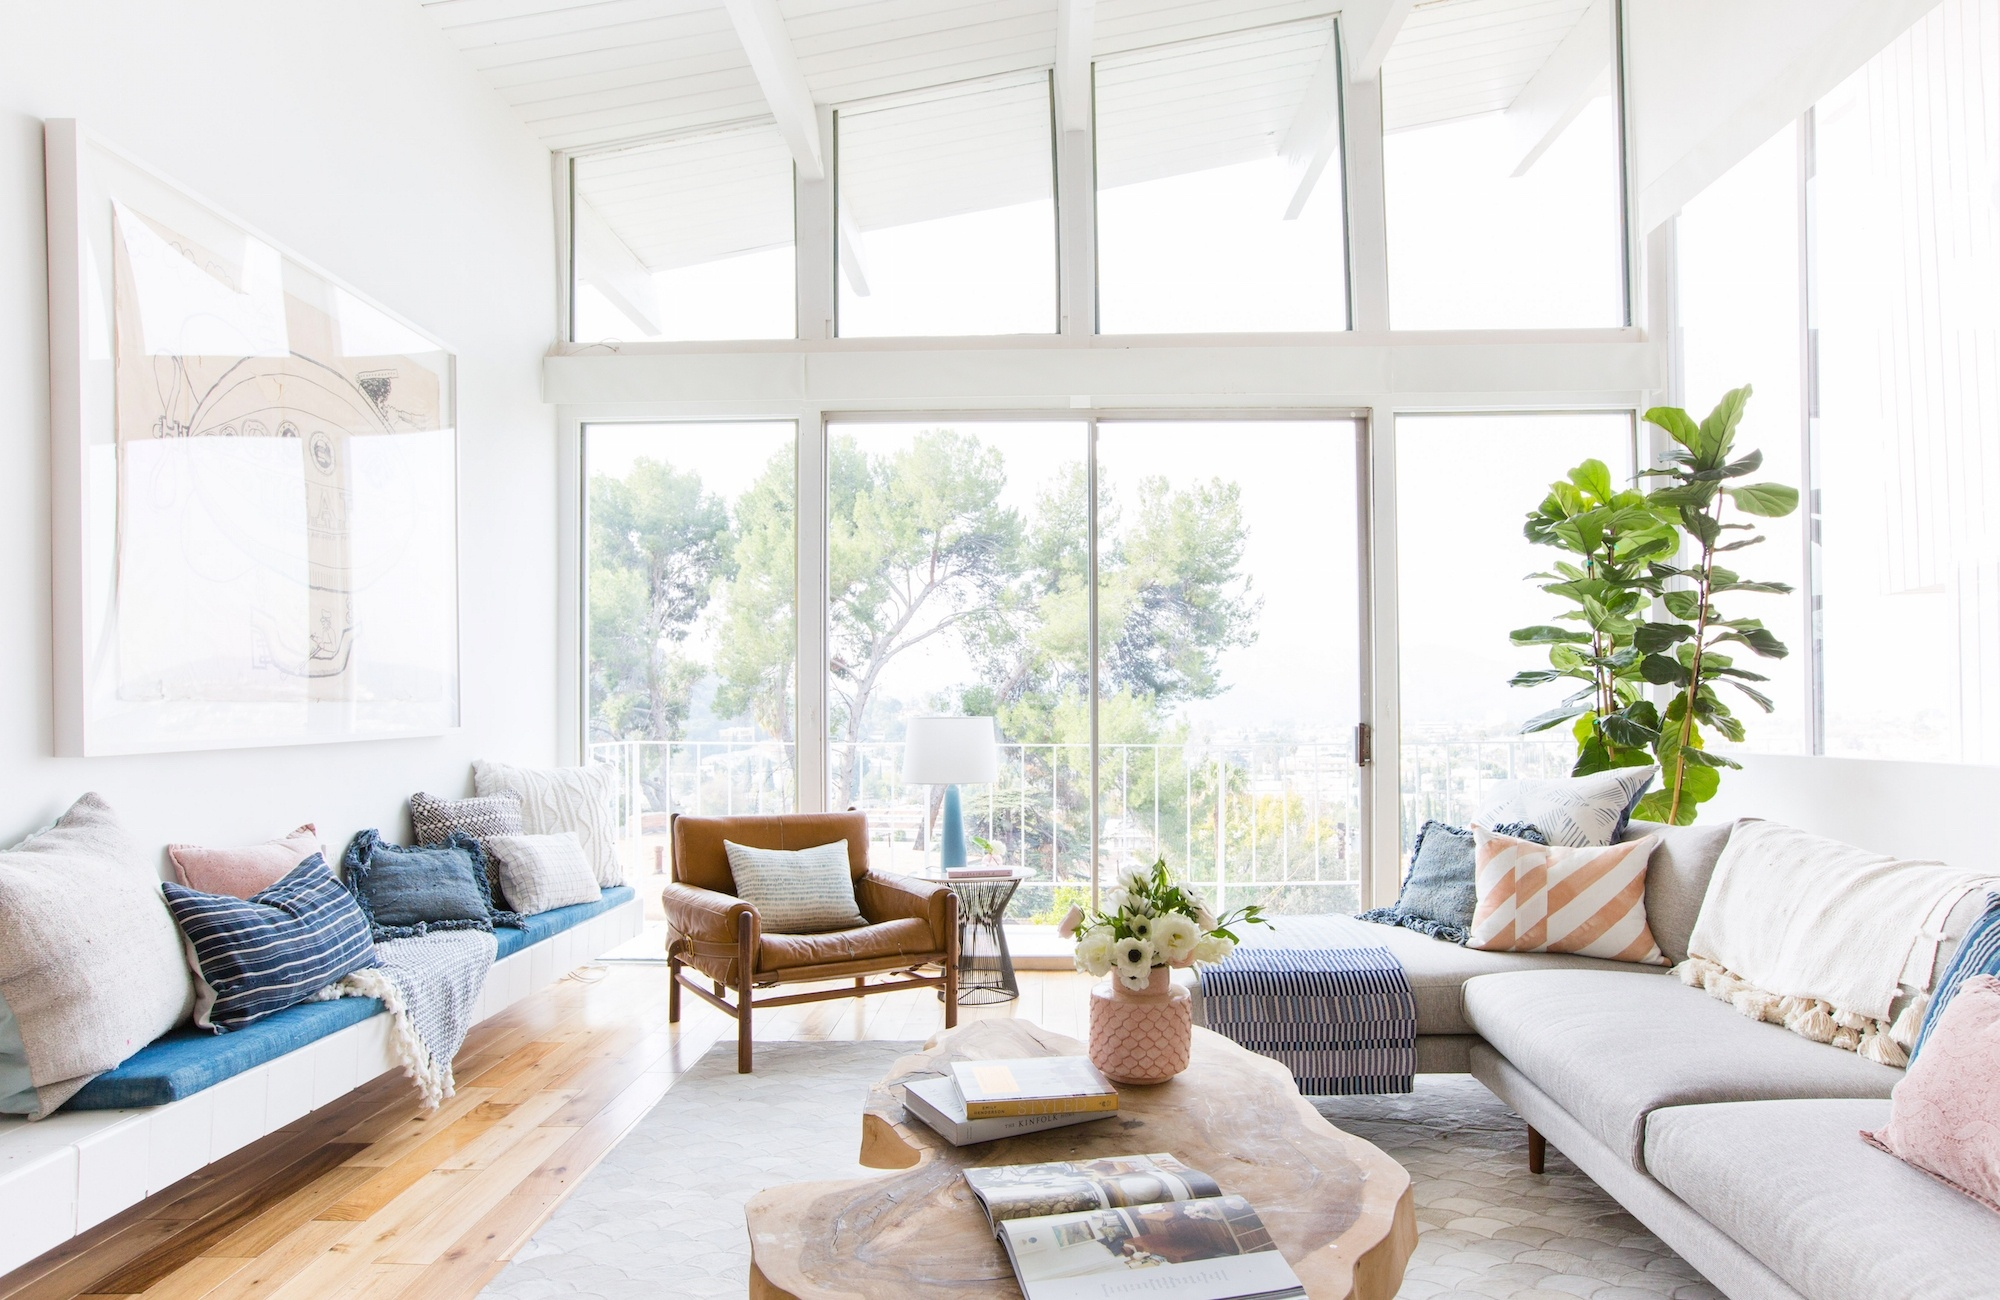 EMILY HENDERSON IS SELLING HER CALIFORNIA HOME AND IT CAN BE YOURS emily henderson EMILY HENDERSON IS SELLING HER CALIFORNIA HOME AND IT CAN BE YOURS EMILY HENDERSON IS SELLING HER CALIFORNIA HOME AND IT CAN BE YOURS 2